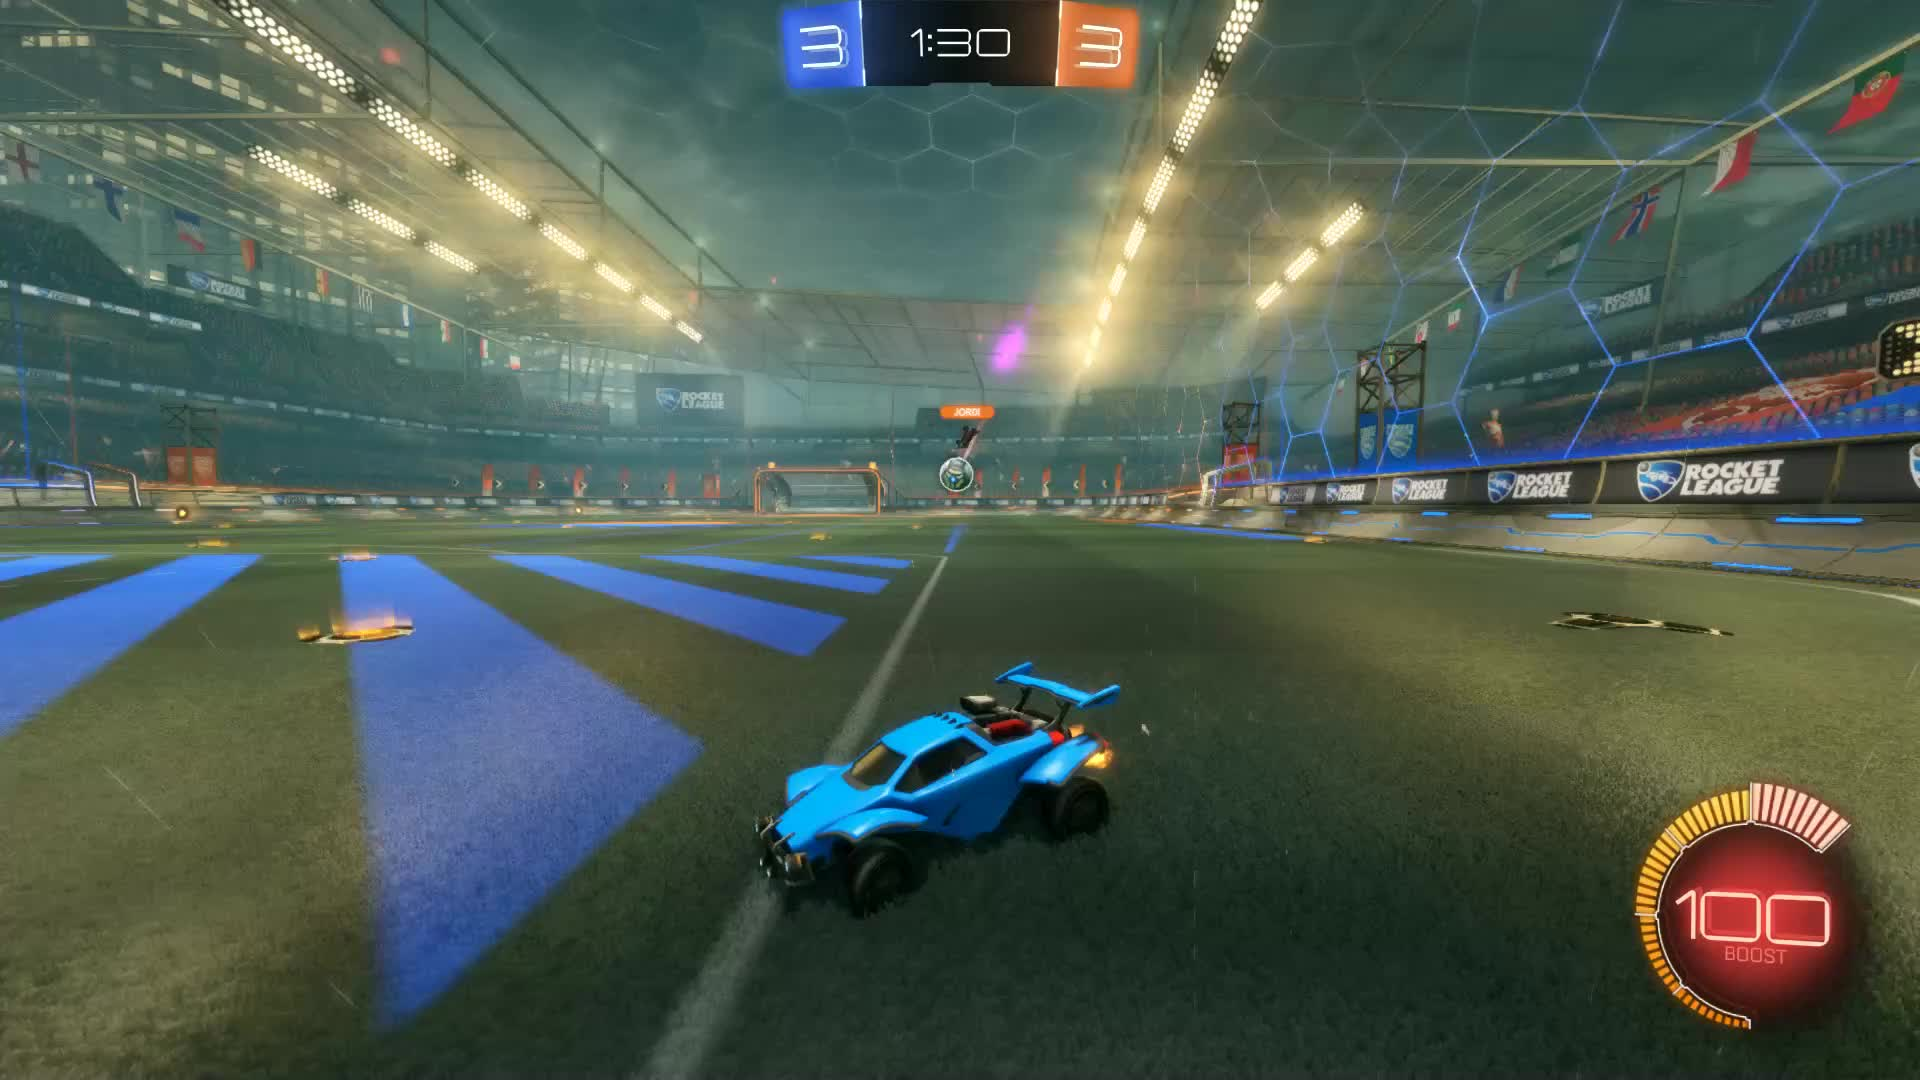 Gif Your Game, GifYourGame, Goal, Rocket League, RocketLeague, andreas, Goal 7: andreas GIFs